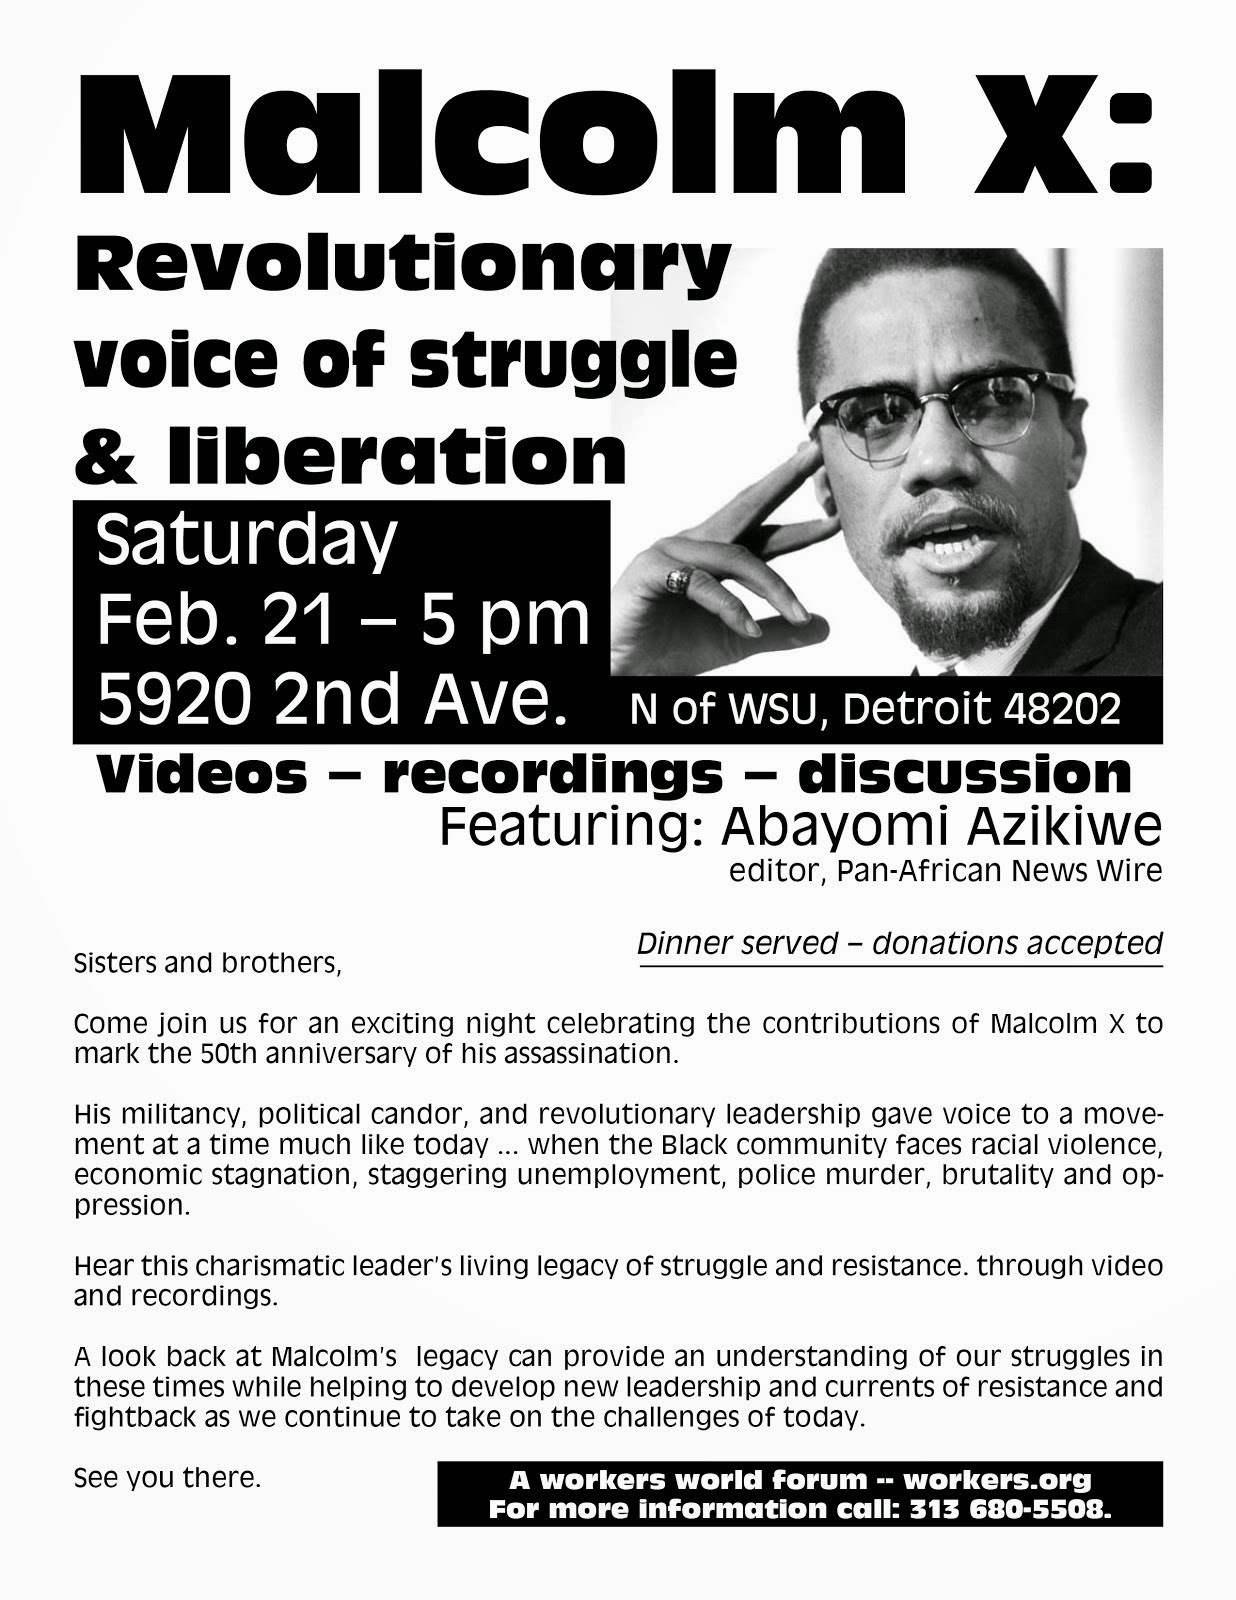 Abayomi Azikiwe Speaks on the Revolutionary Legacy of Malcolm X on Sat. Feb. 21, 2015, 5:00-8:00pm